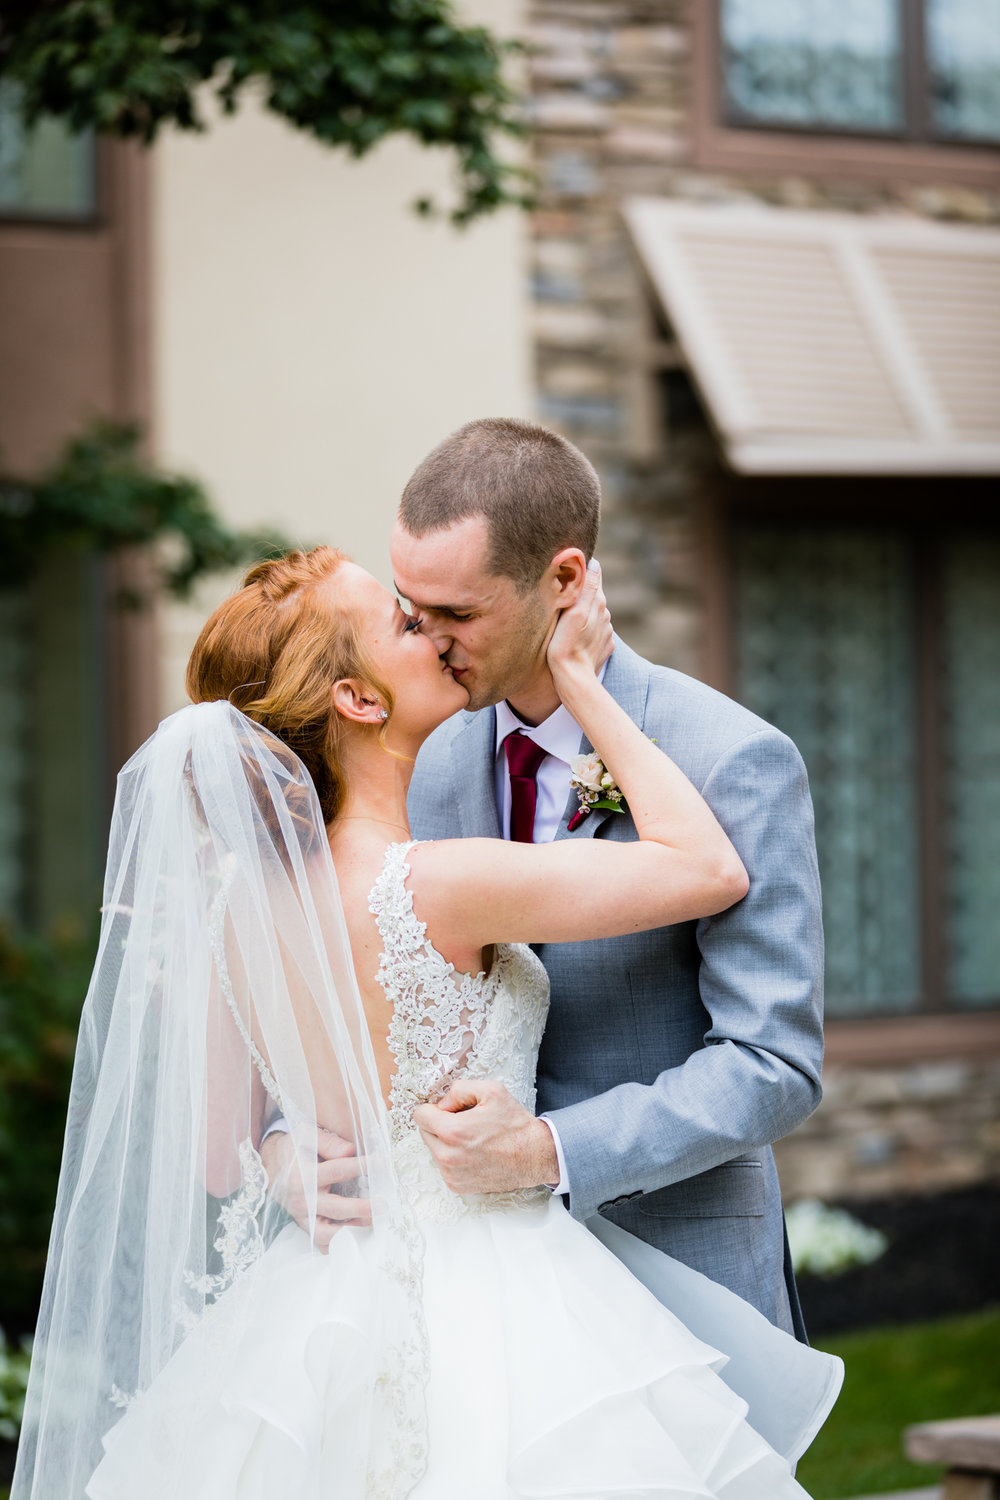 Eden Resorts and Spa Wedding Photography - Lovestruck Pictures-035.jpg